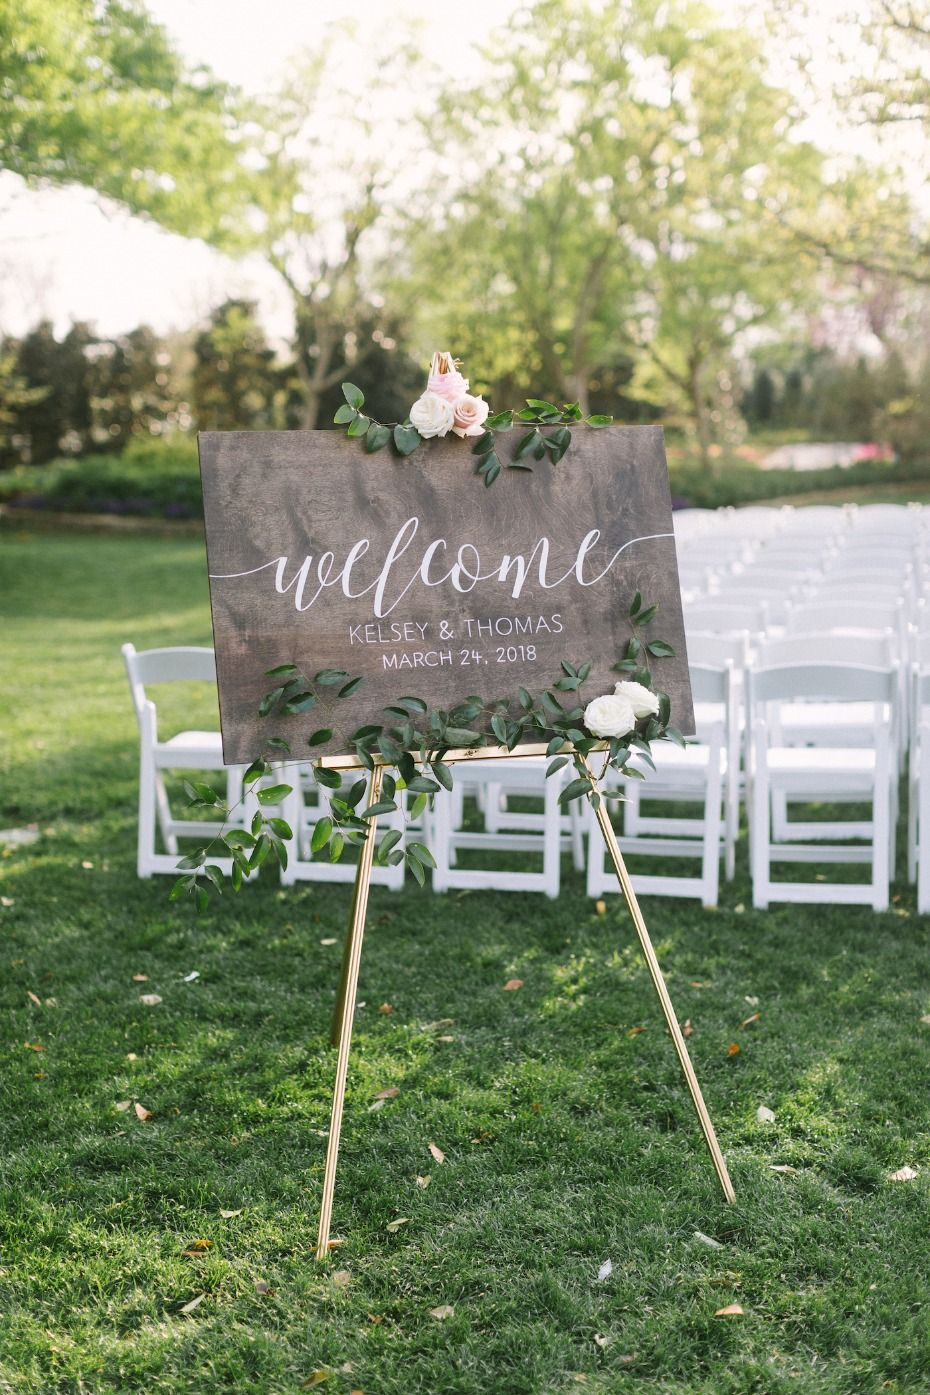 Navy And Burgundy Garden Party Wedding For Under 50k Welcome To Our Wedding Wooden Wedding Signs Wedding Welcome Board